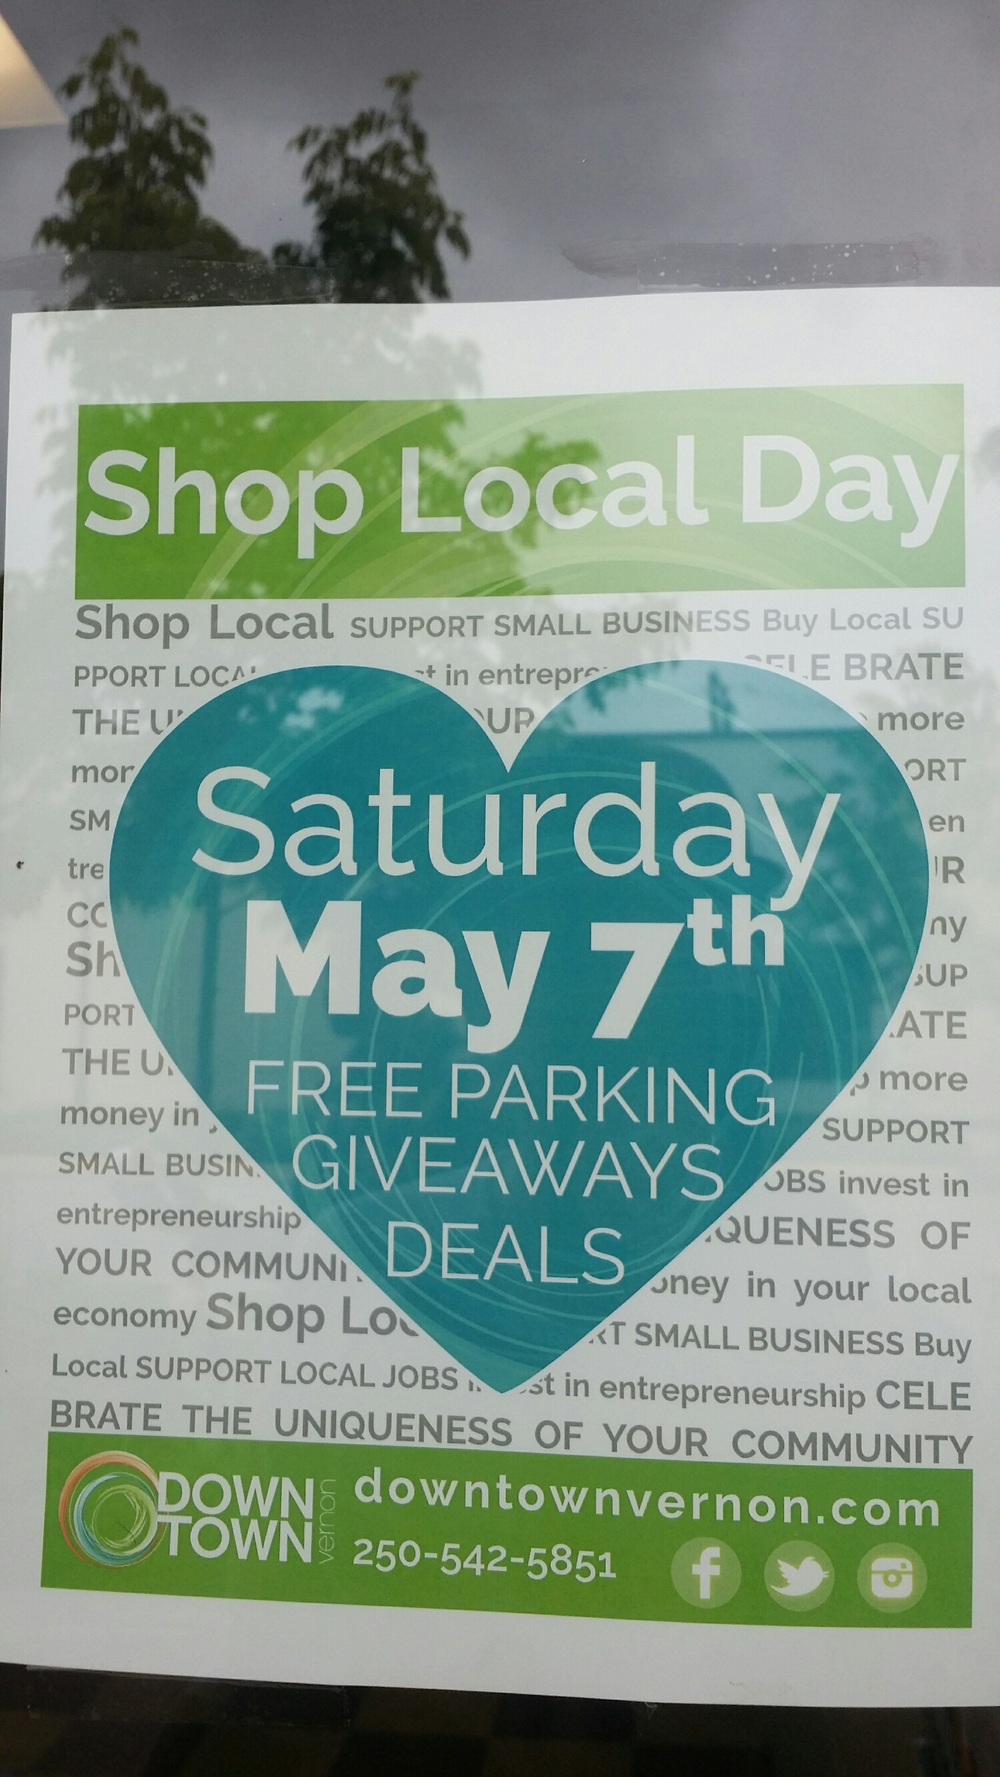 20% off all Apparel this Saturday for Shop Local Day!!! 😆 👍